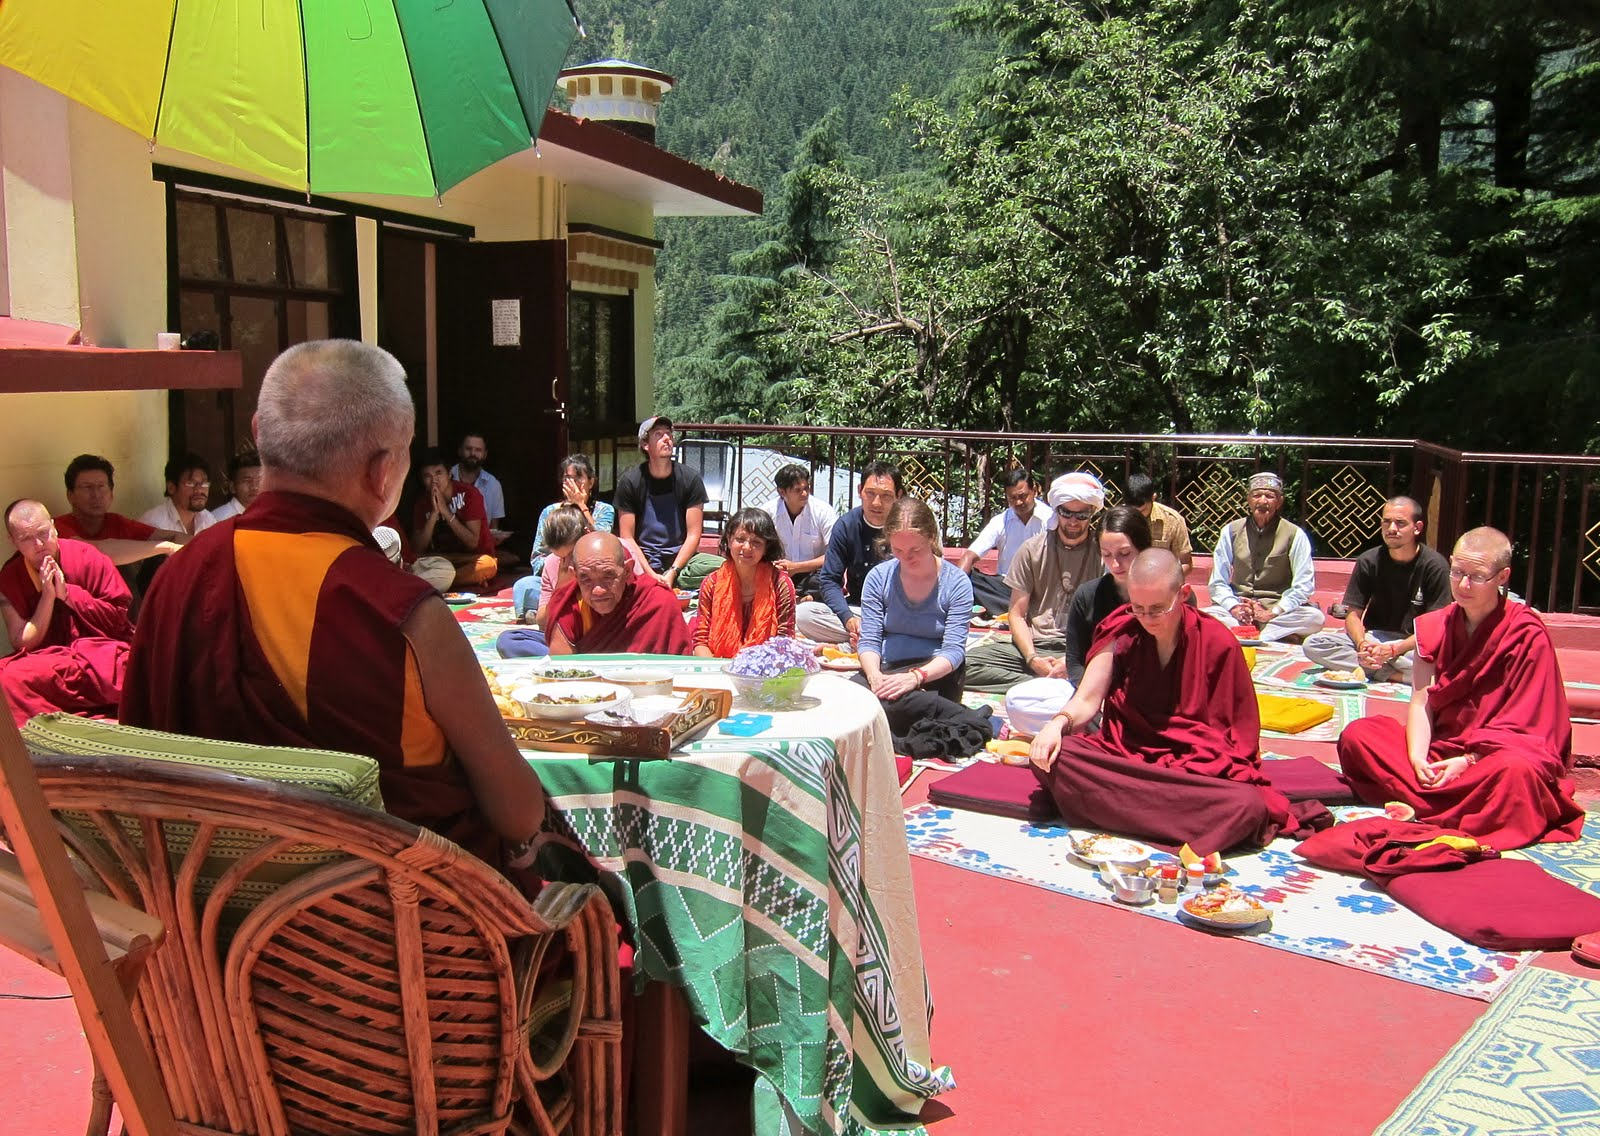 Rinpoche had lunch with Tushita staff on the roof of the gompa, Tushita. June 18, 2013 Photo. Ven.Sarah Thresher